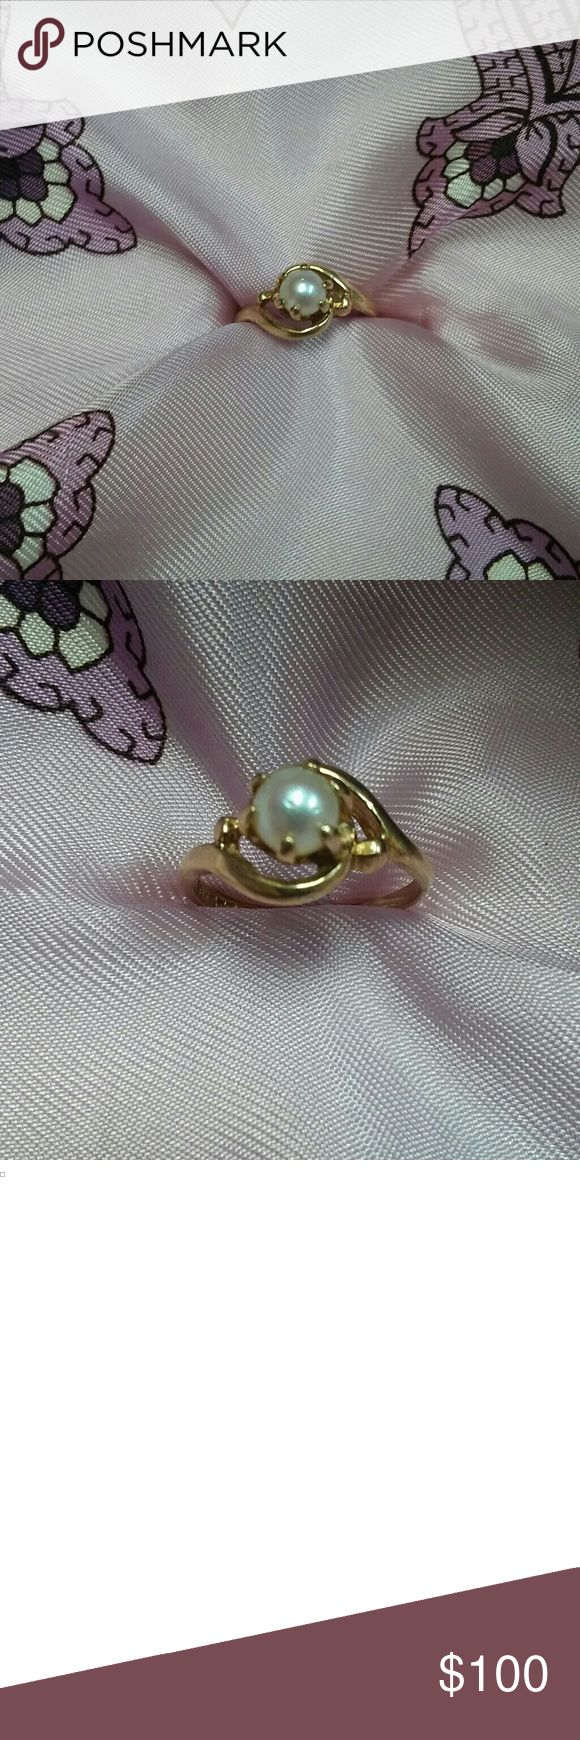 Vintage 10k gold Pearl Ring Size 5.5 This is a beautiful vintage gold ring marked 10k GTR. GTR was a maker's mark used by J.M. Fox, Inc in Long Island City, New York. This ring has been resized to a size 5.5. In the picture you can see the natural imperfections of the pearl. The ring could use a cleaning but it is in good condition otherwise, especially for its age! Thank you so much for looking!! I am open to offers! J.M Fox Jewelry Jewelry Rings